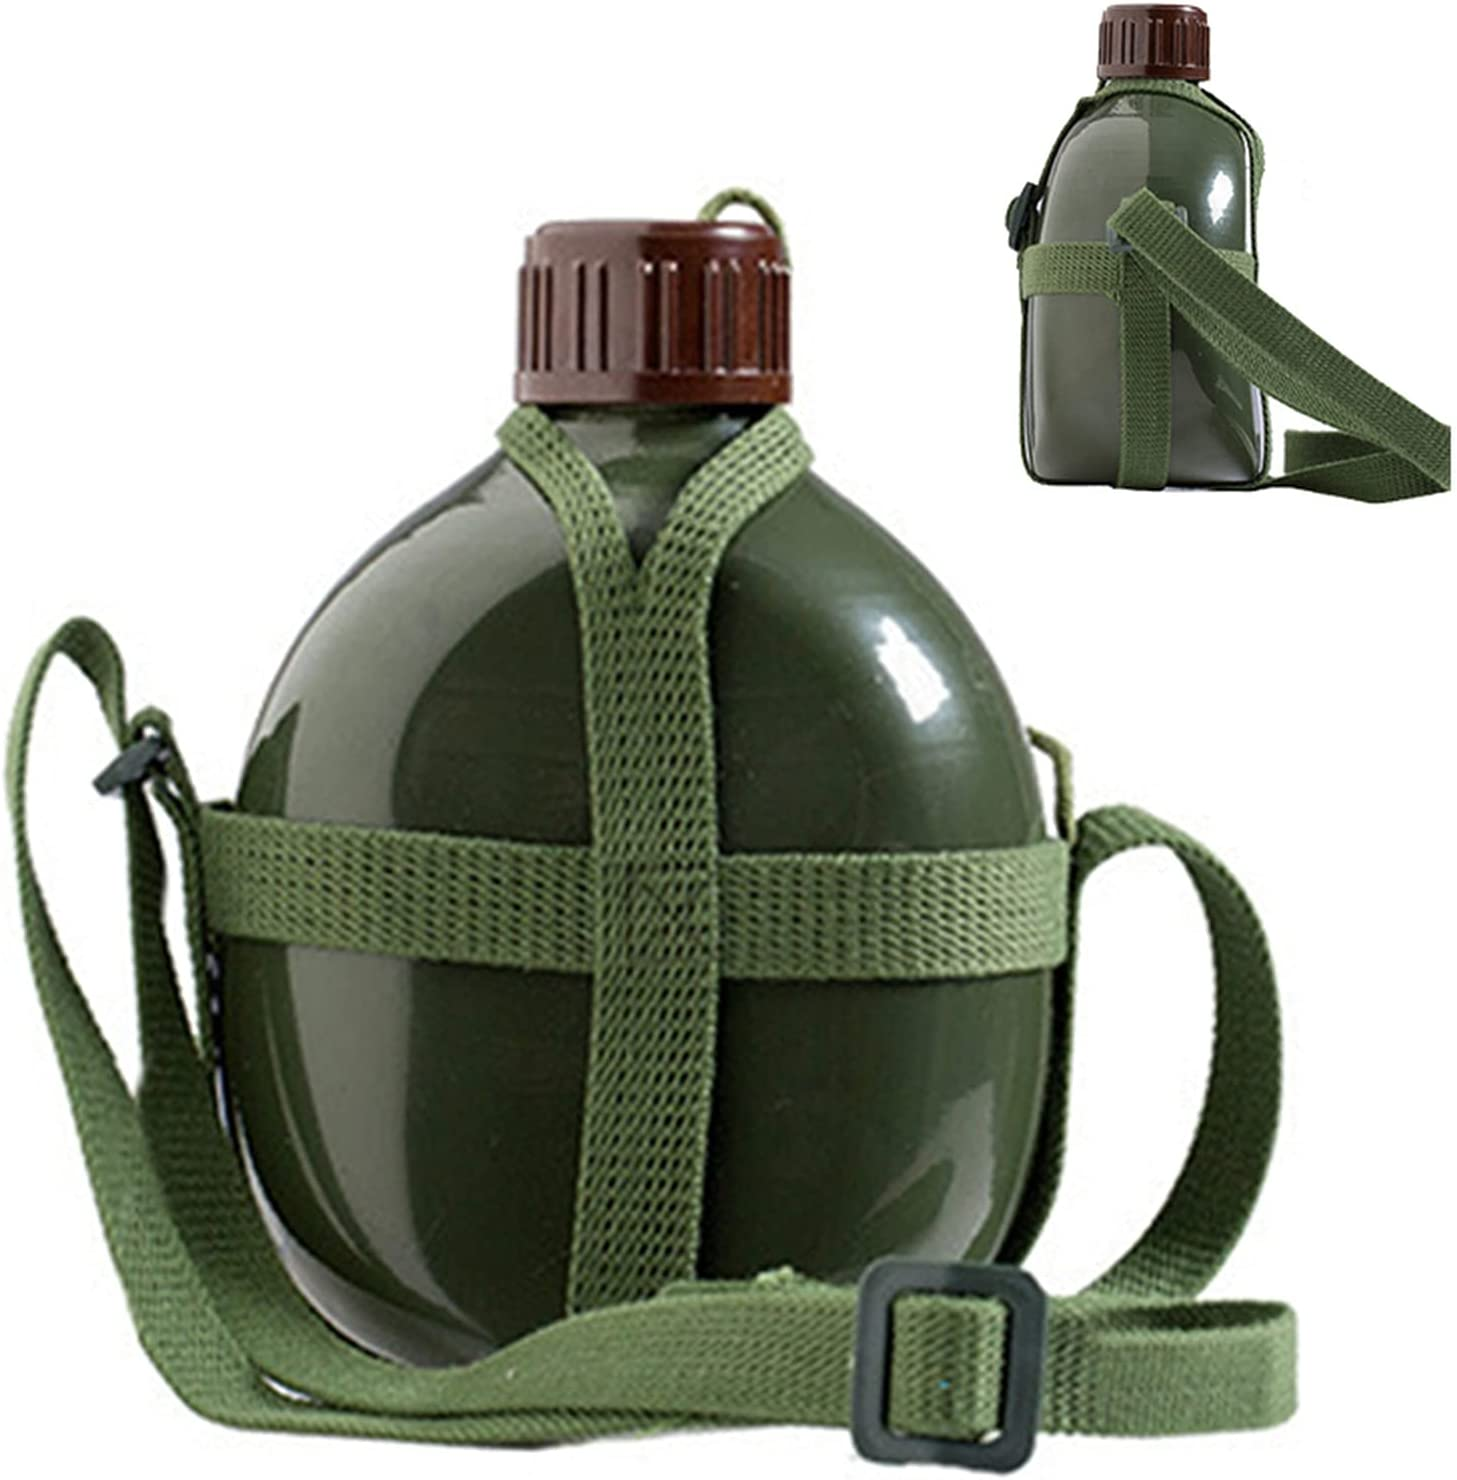 Philadelphia Mall WYGOAKG Military Army Flask Wine Online limited product Water S Cup with Bottle Cooking